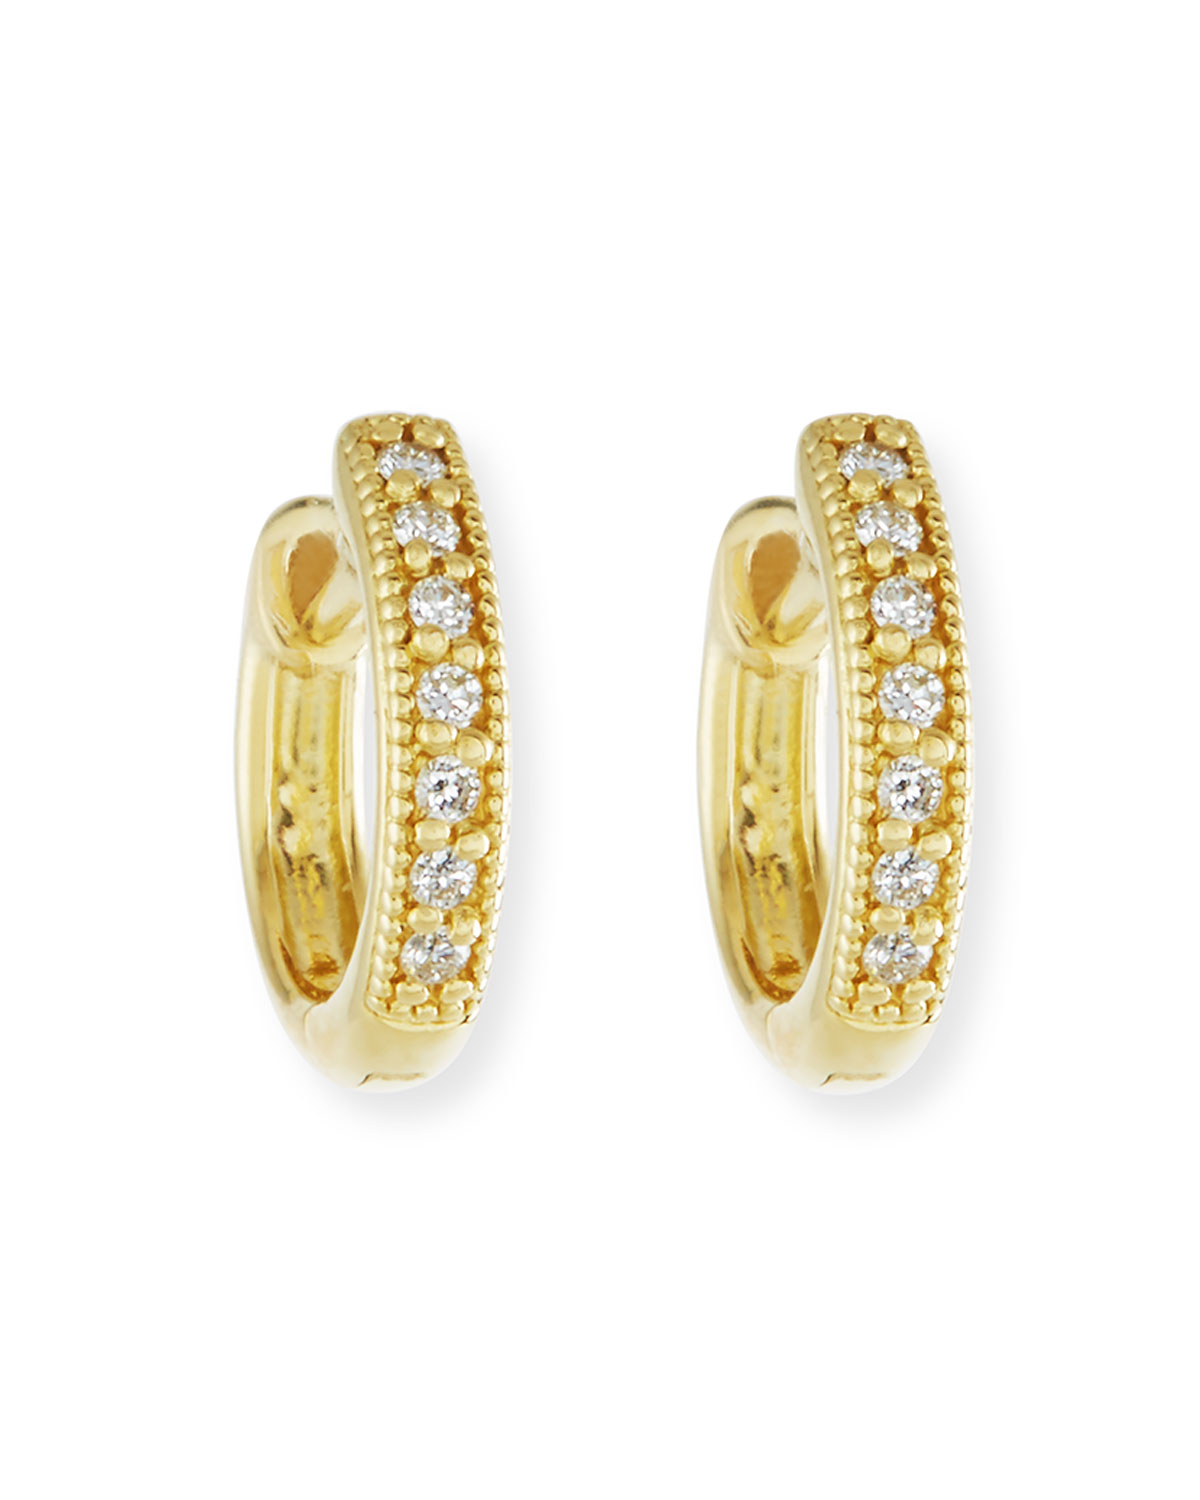 Small 18k Gold Hoop Earrings with Diamonds, 11mm - JudeFrances Jewelry